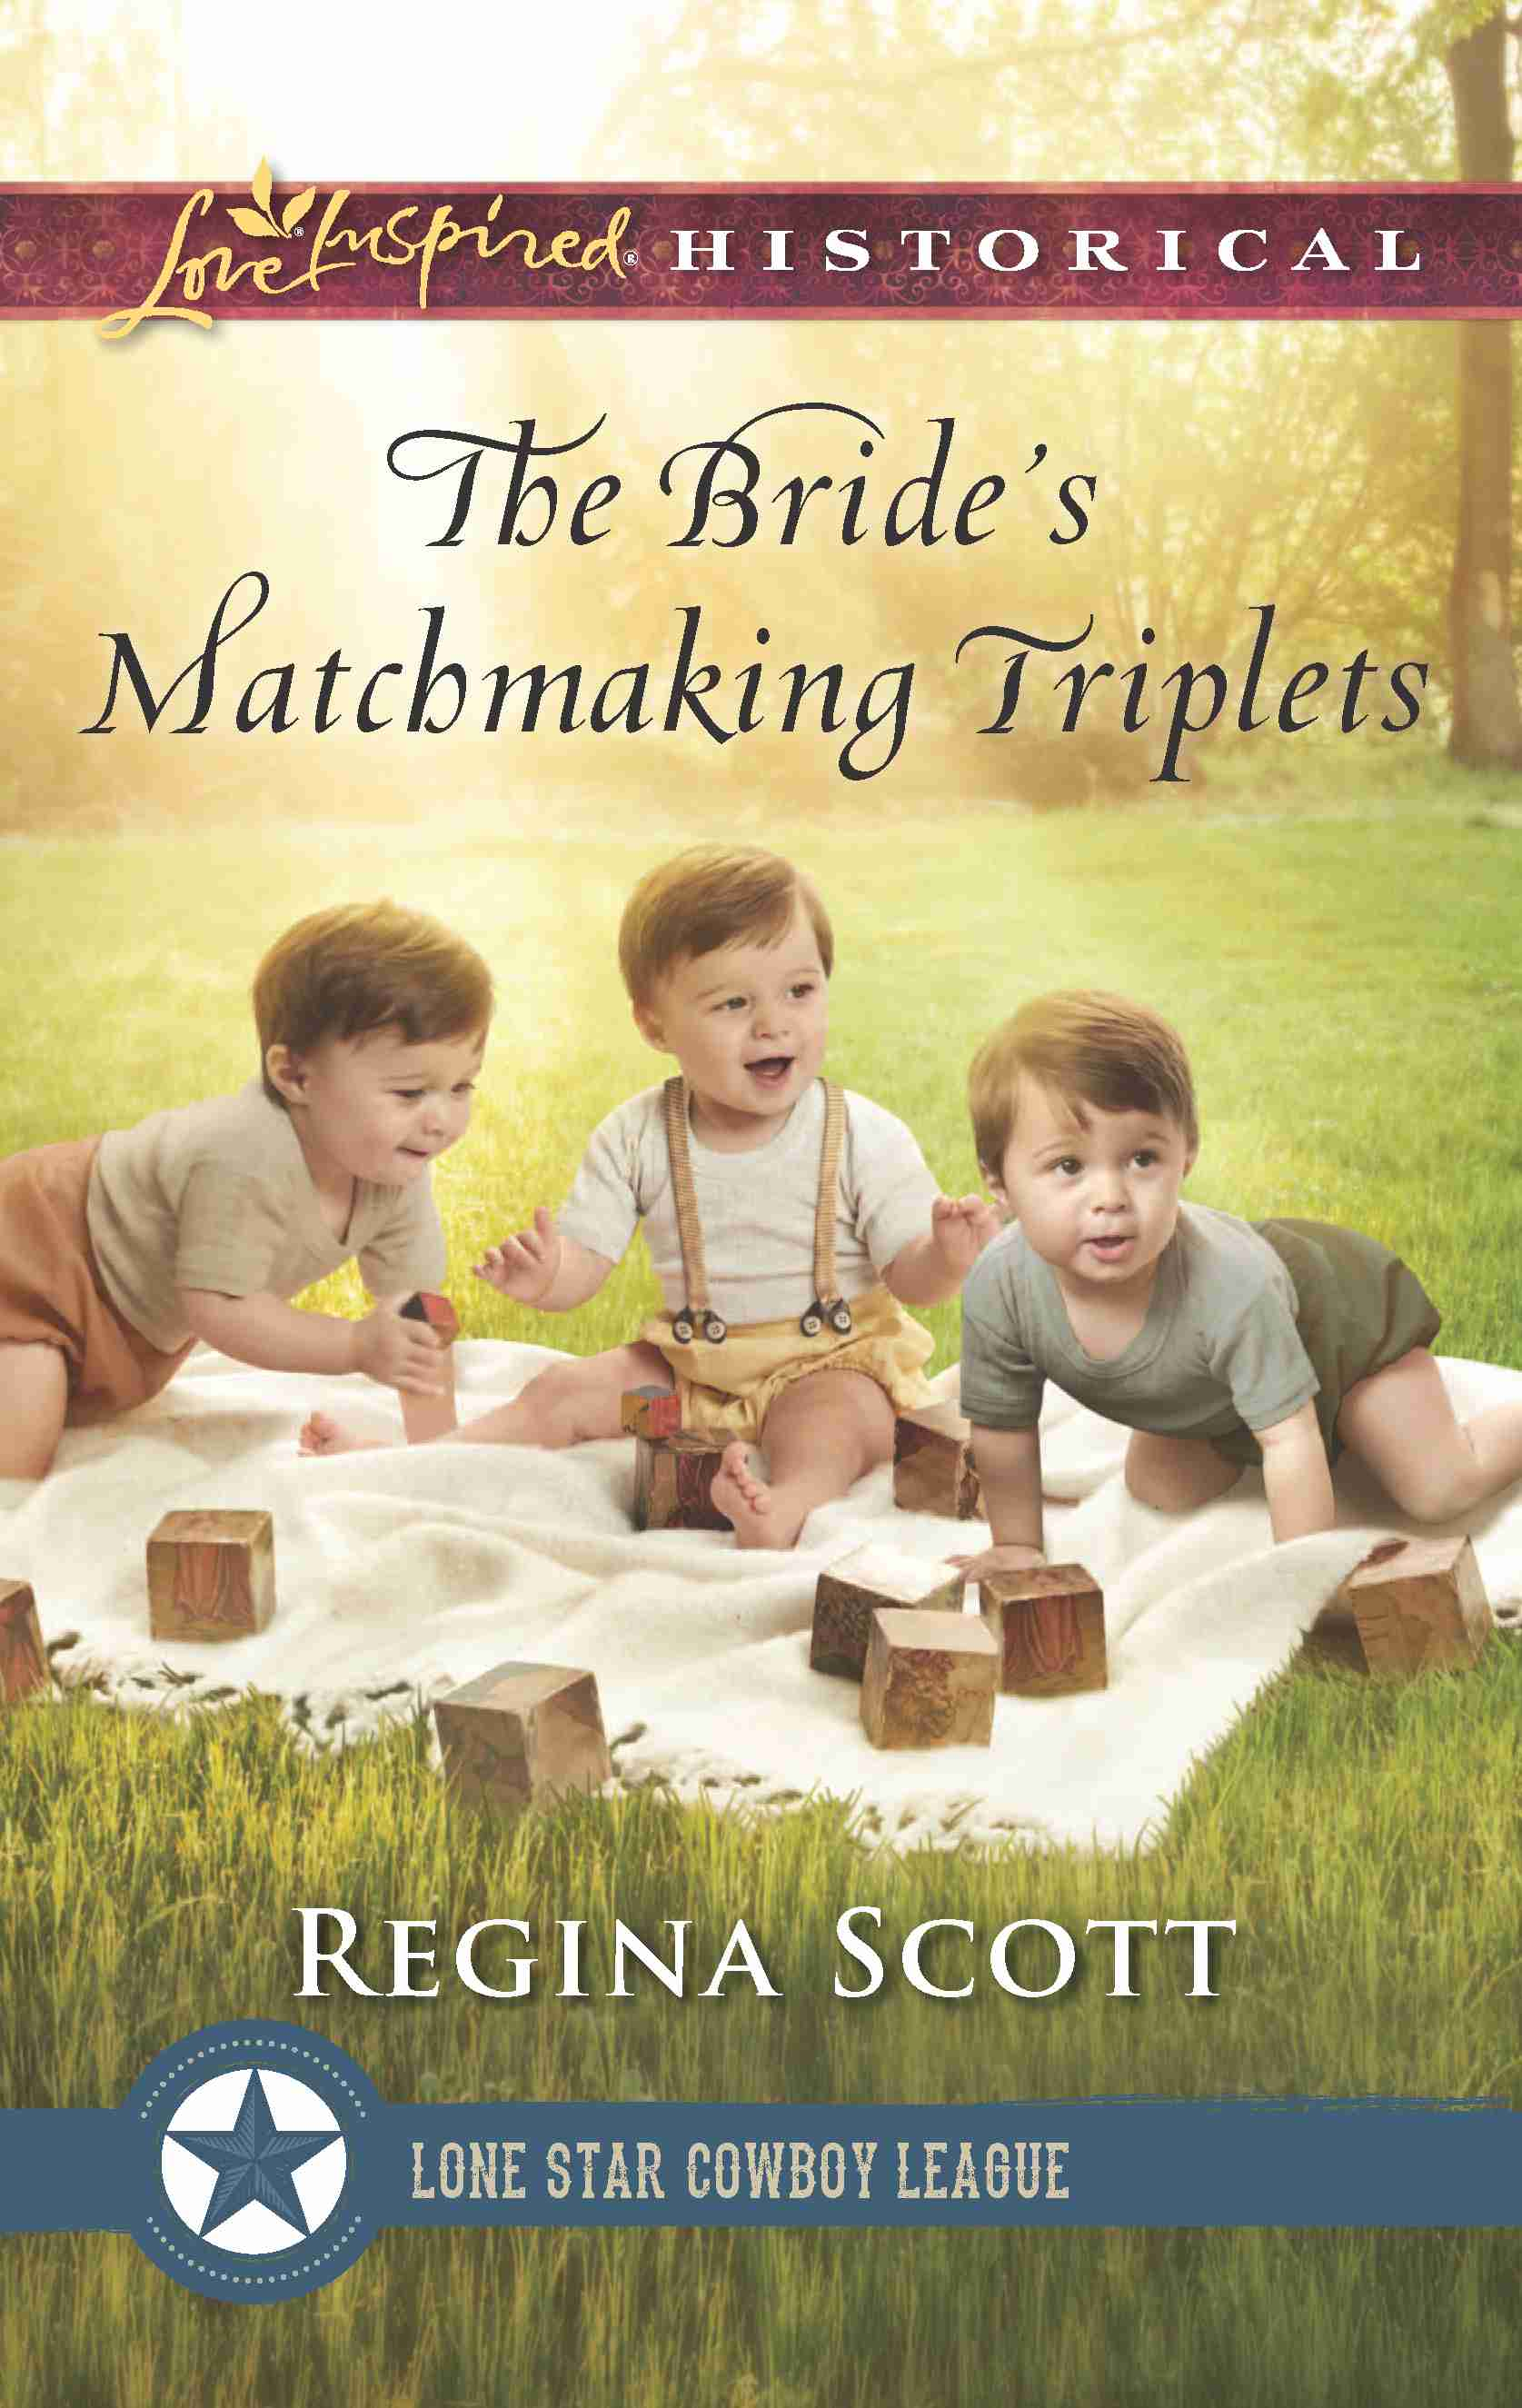 Cover for The Bride's Matchmaking Triplets by historical romance author Regina Scott